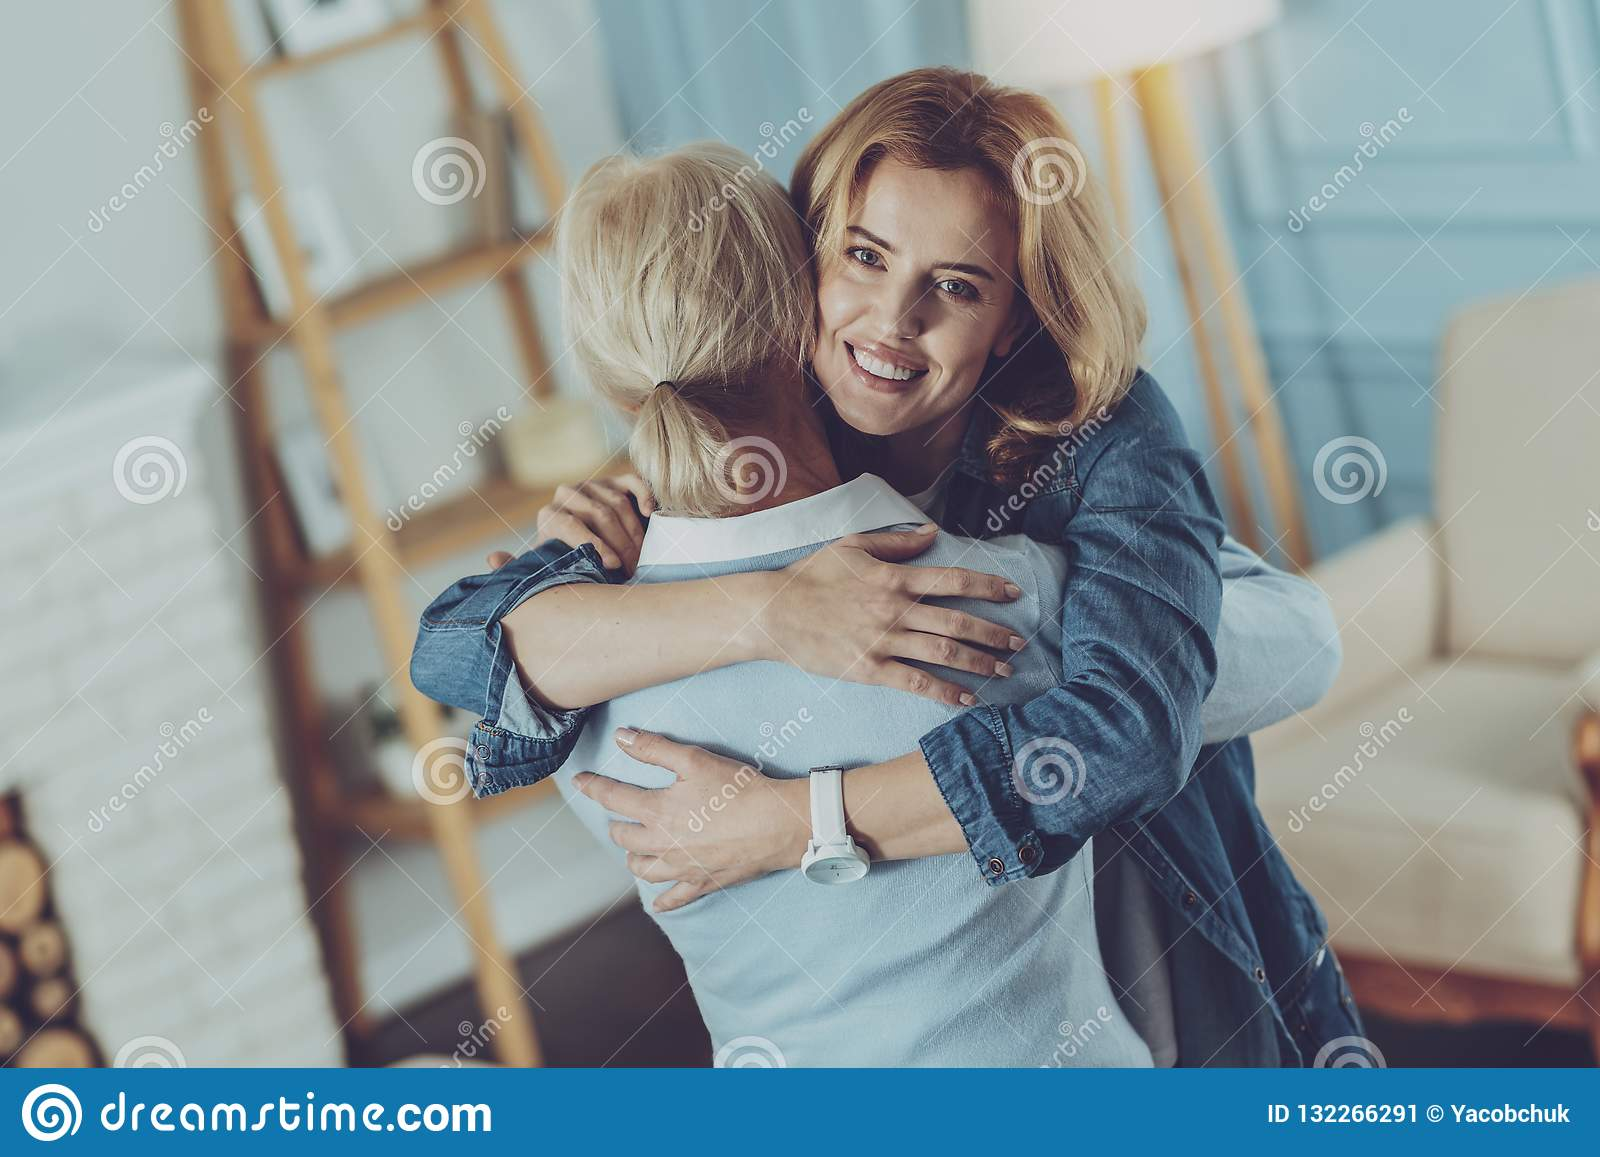 Embraces Of Loving Mother And Daughter Stock Image